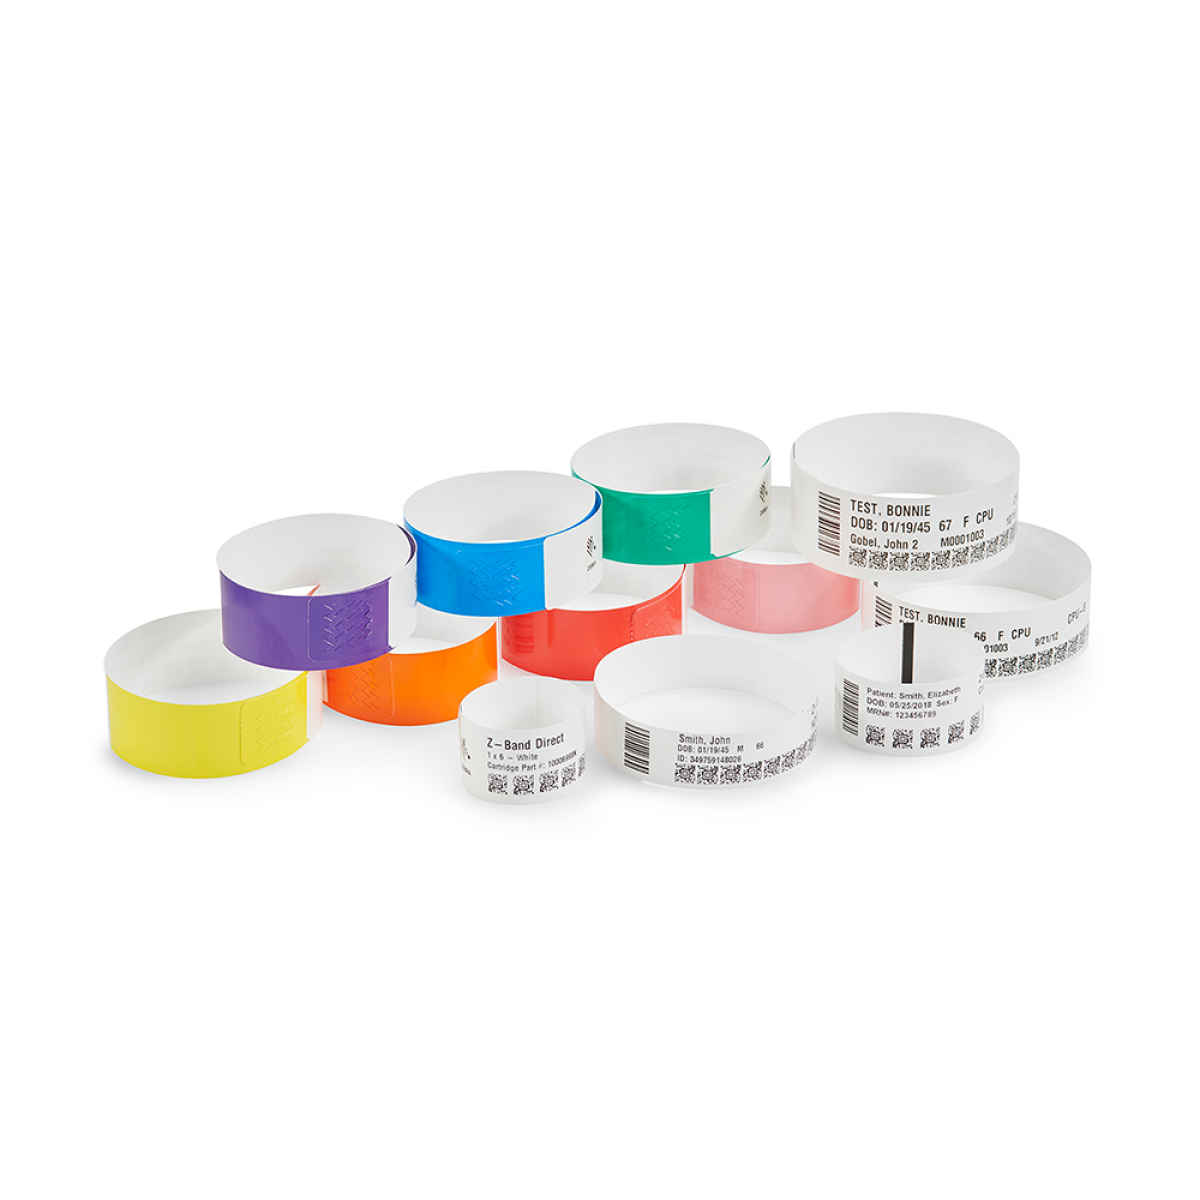 Wristband printing supplies for healthcare, hospitality and leisure